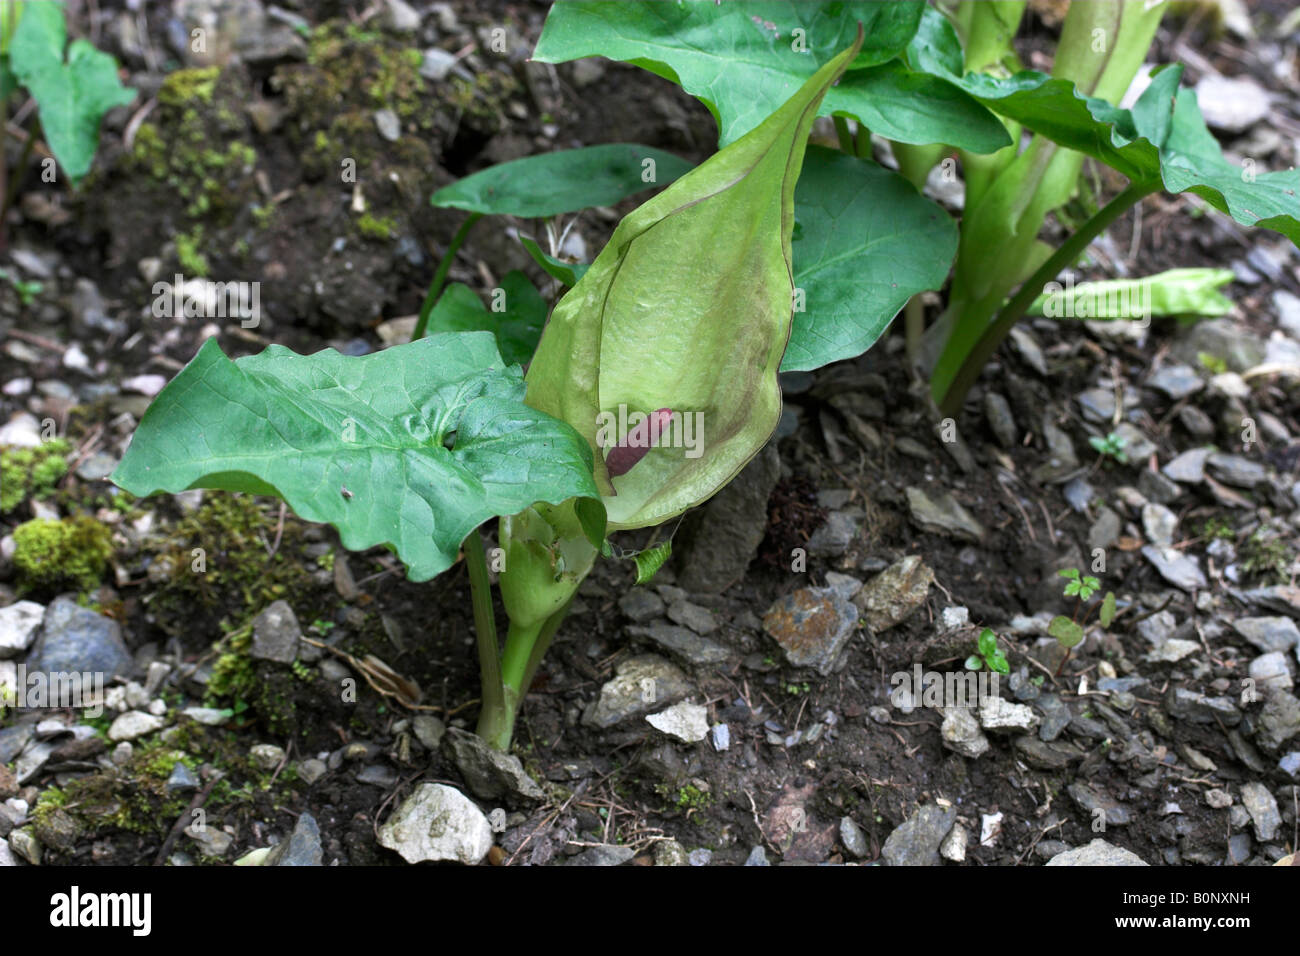 Cuckoo Pint Arum Maculatum showing purple spadix and hooded spathe - Stock Image